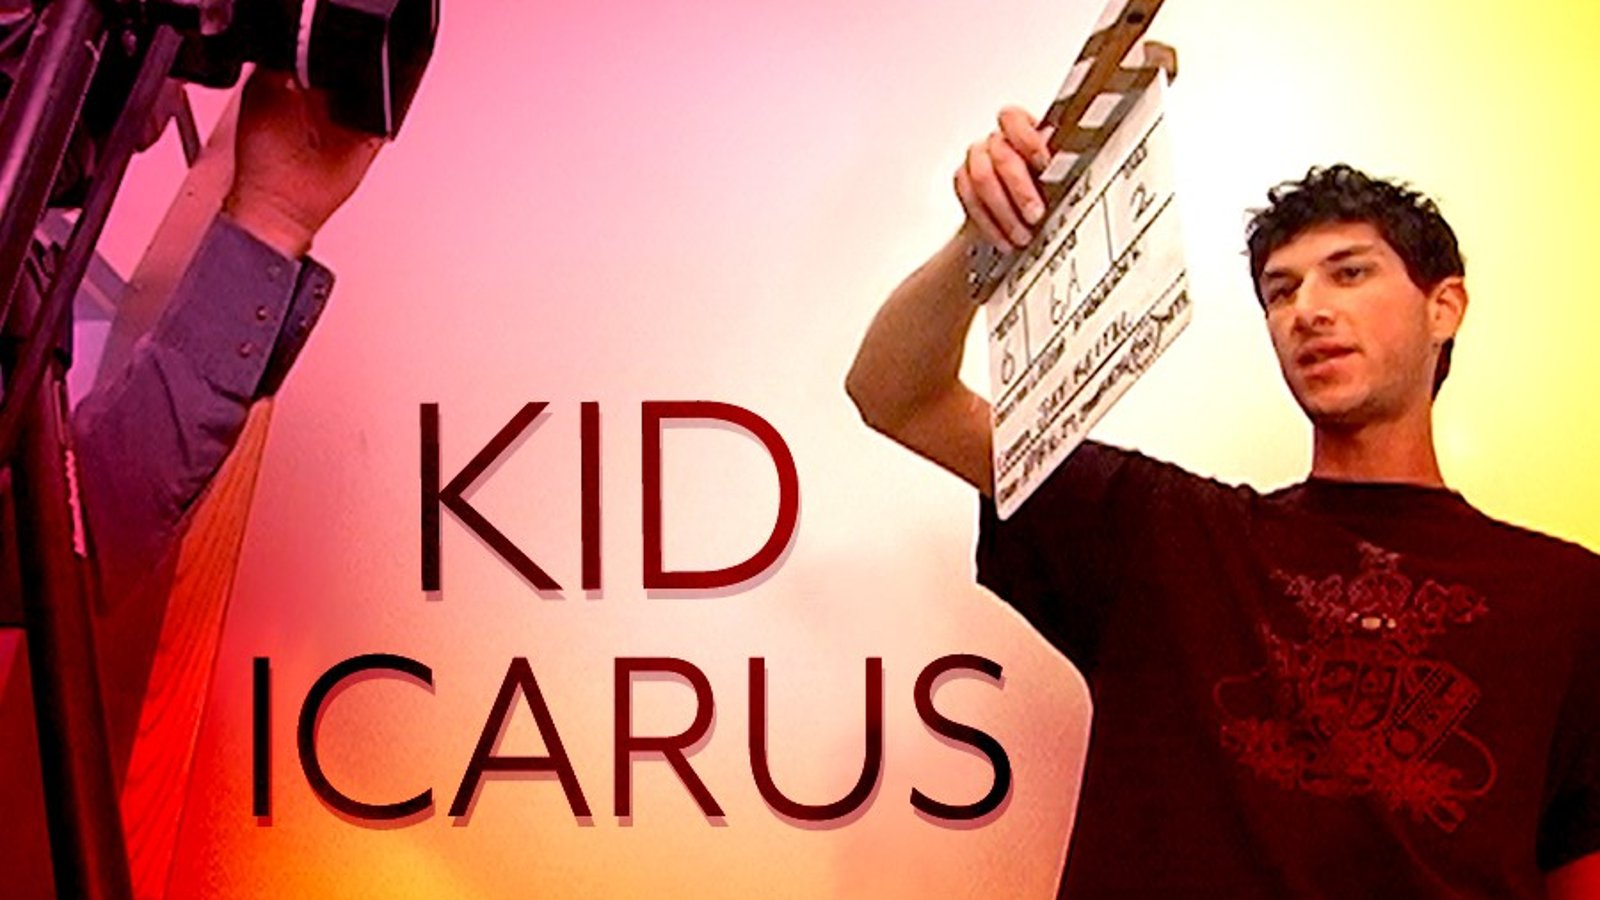 Kid Icarus - The Making of a Student Film